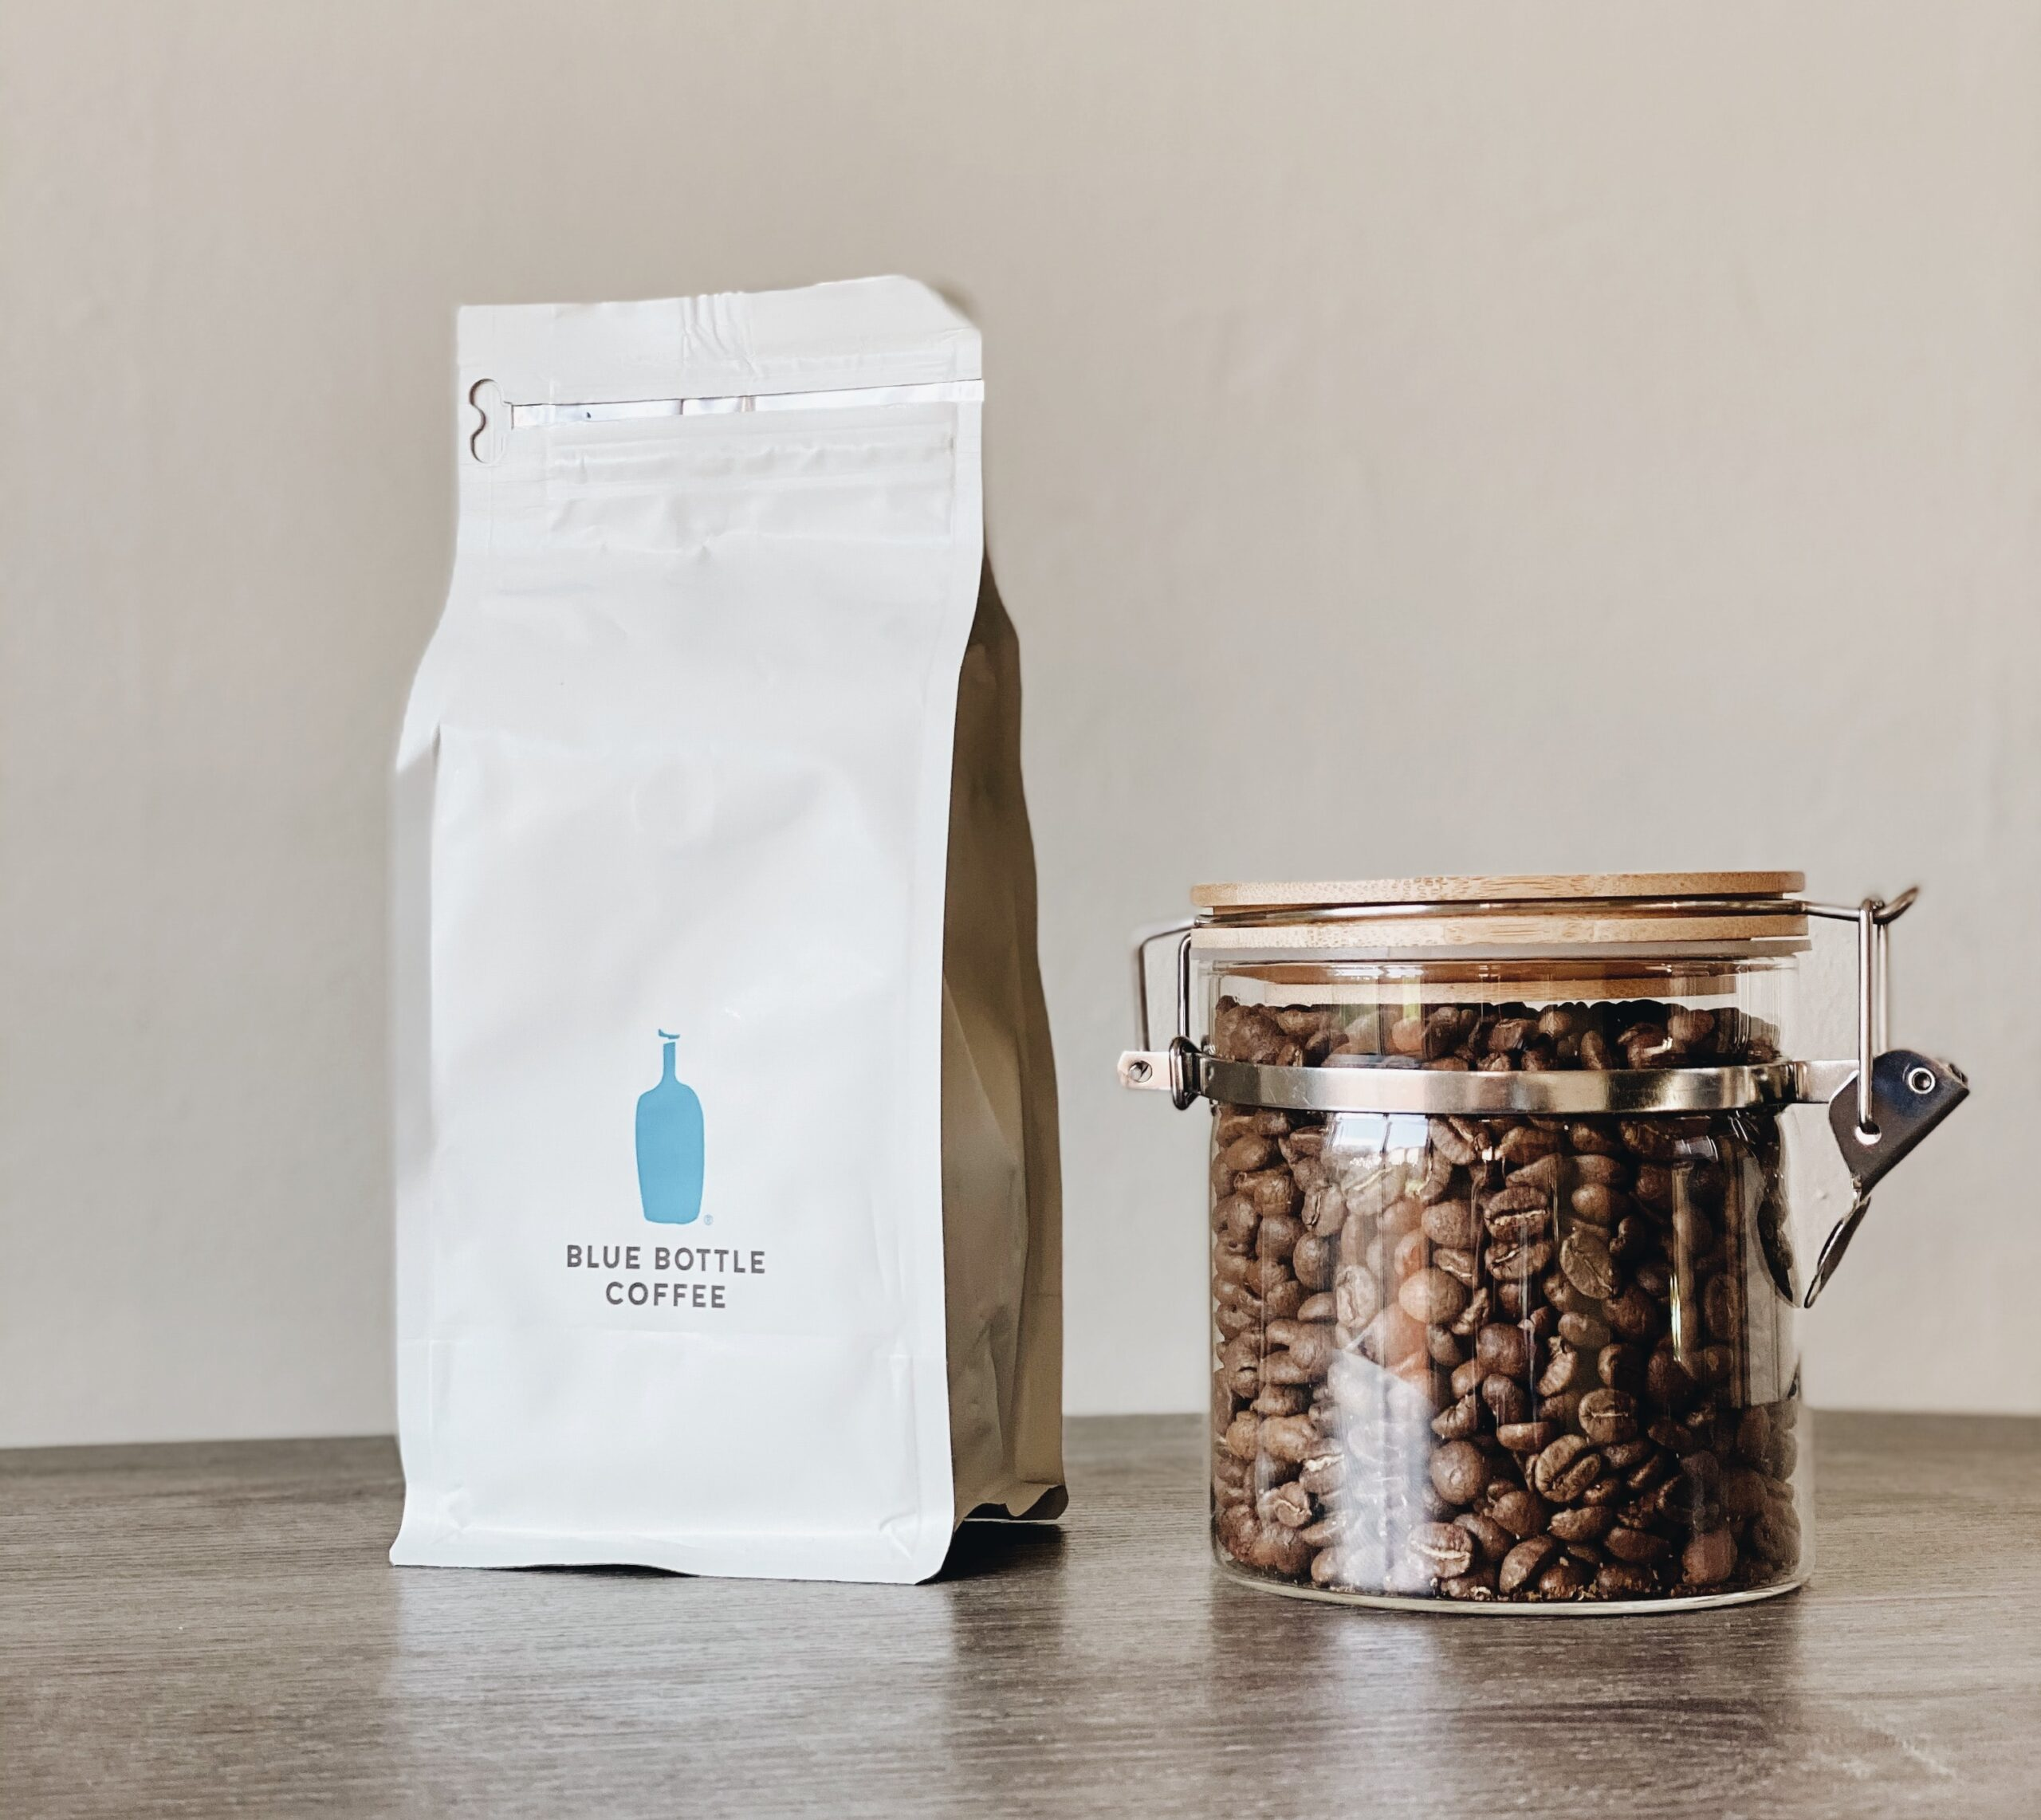 a bag of coffee beans on the table